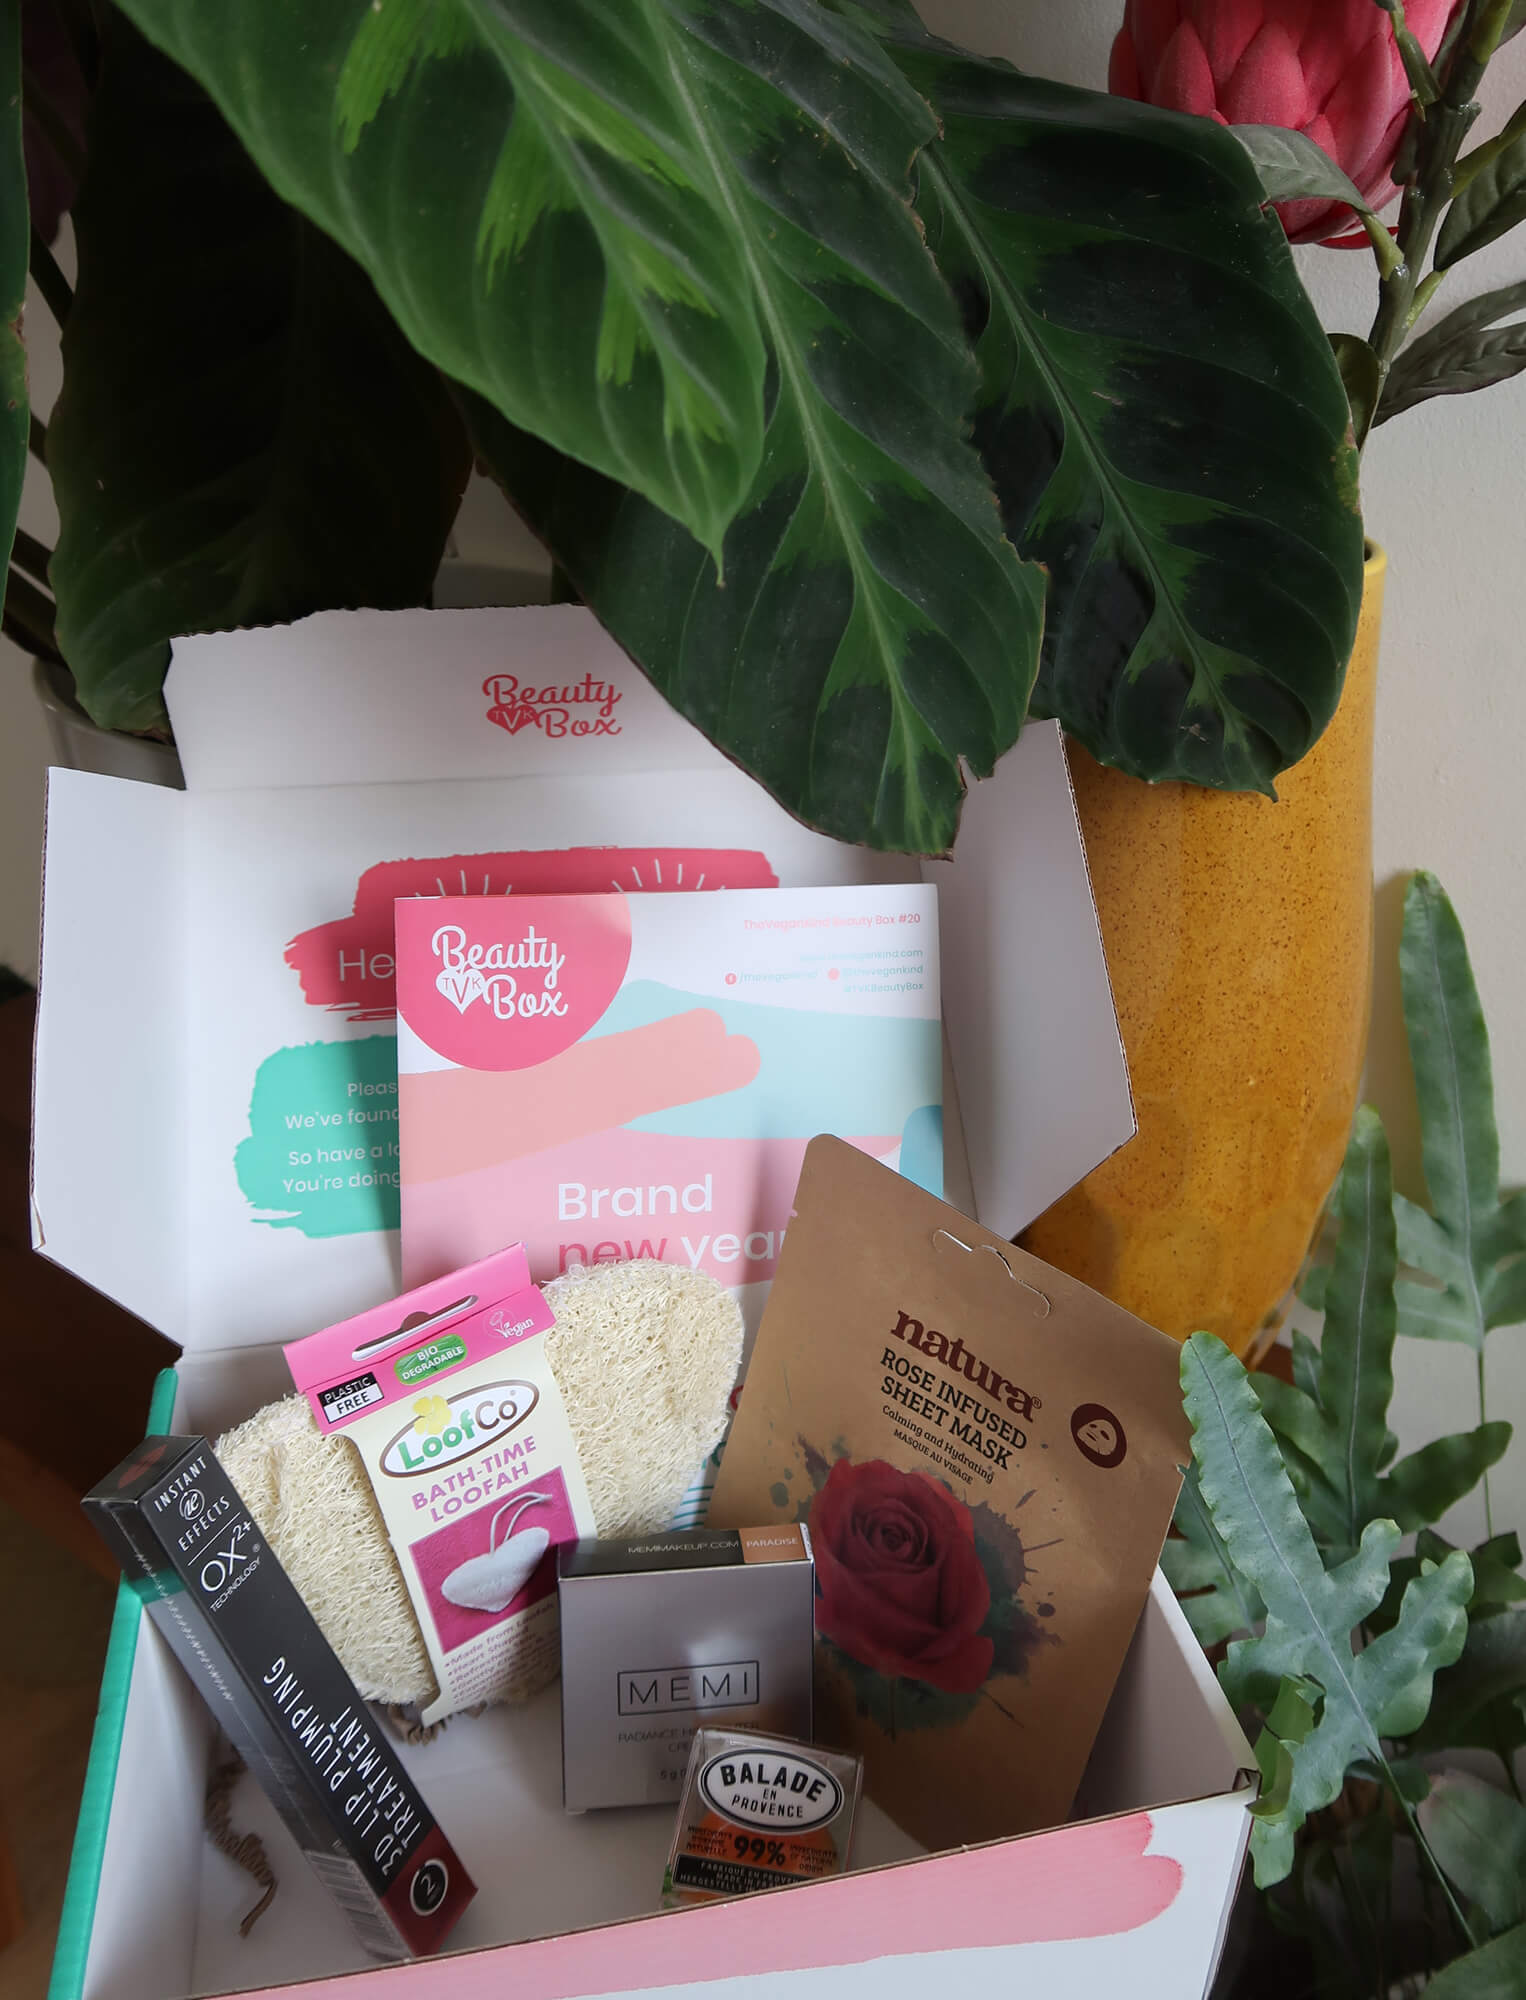 The contents of TheVeganKind beauty box. The box is sitting surrounded by green plants.